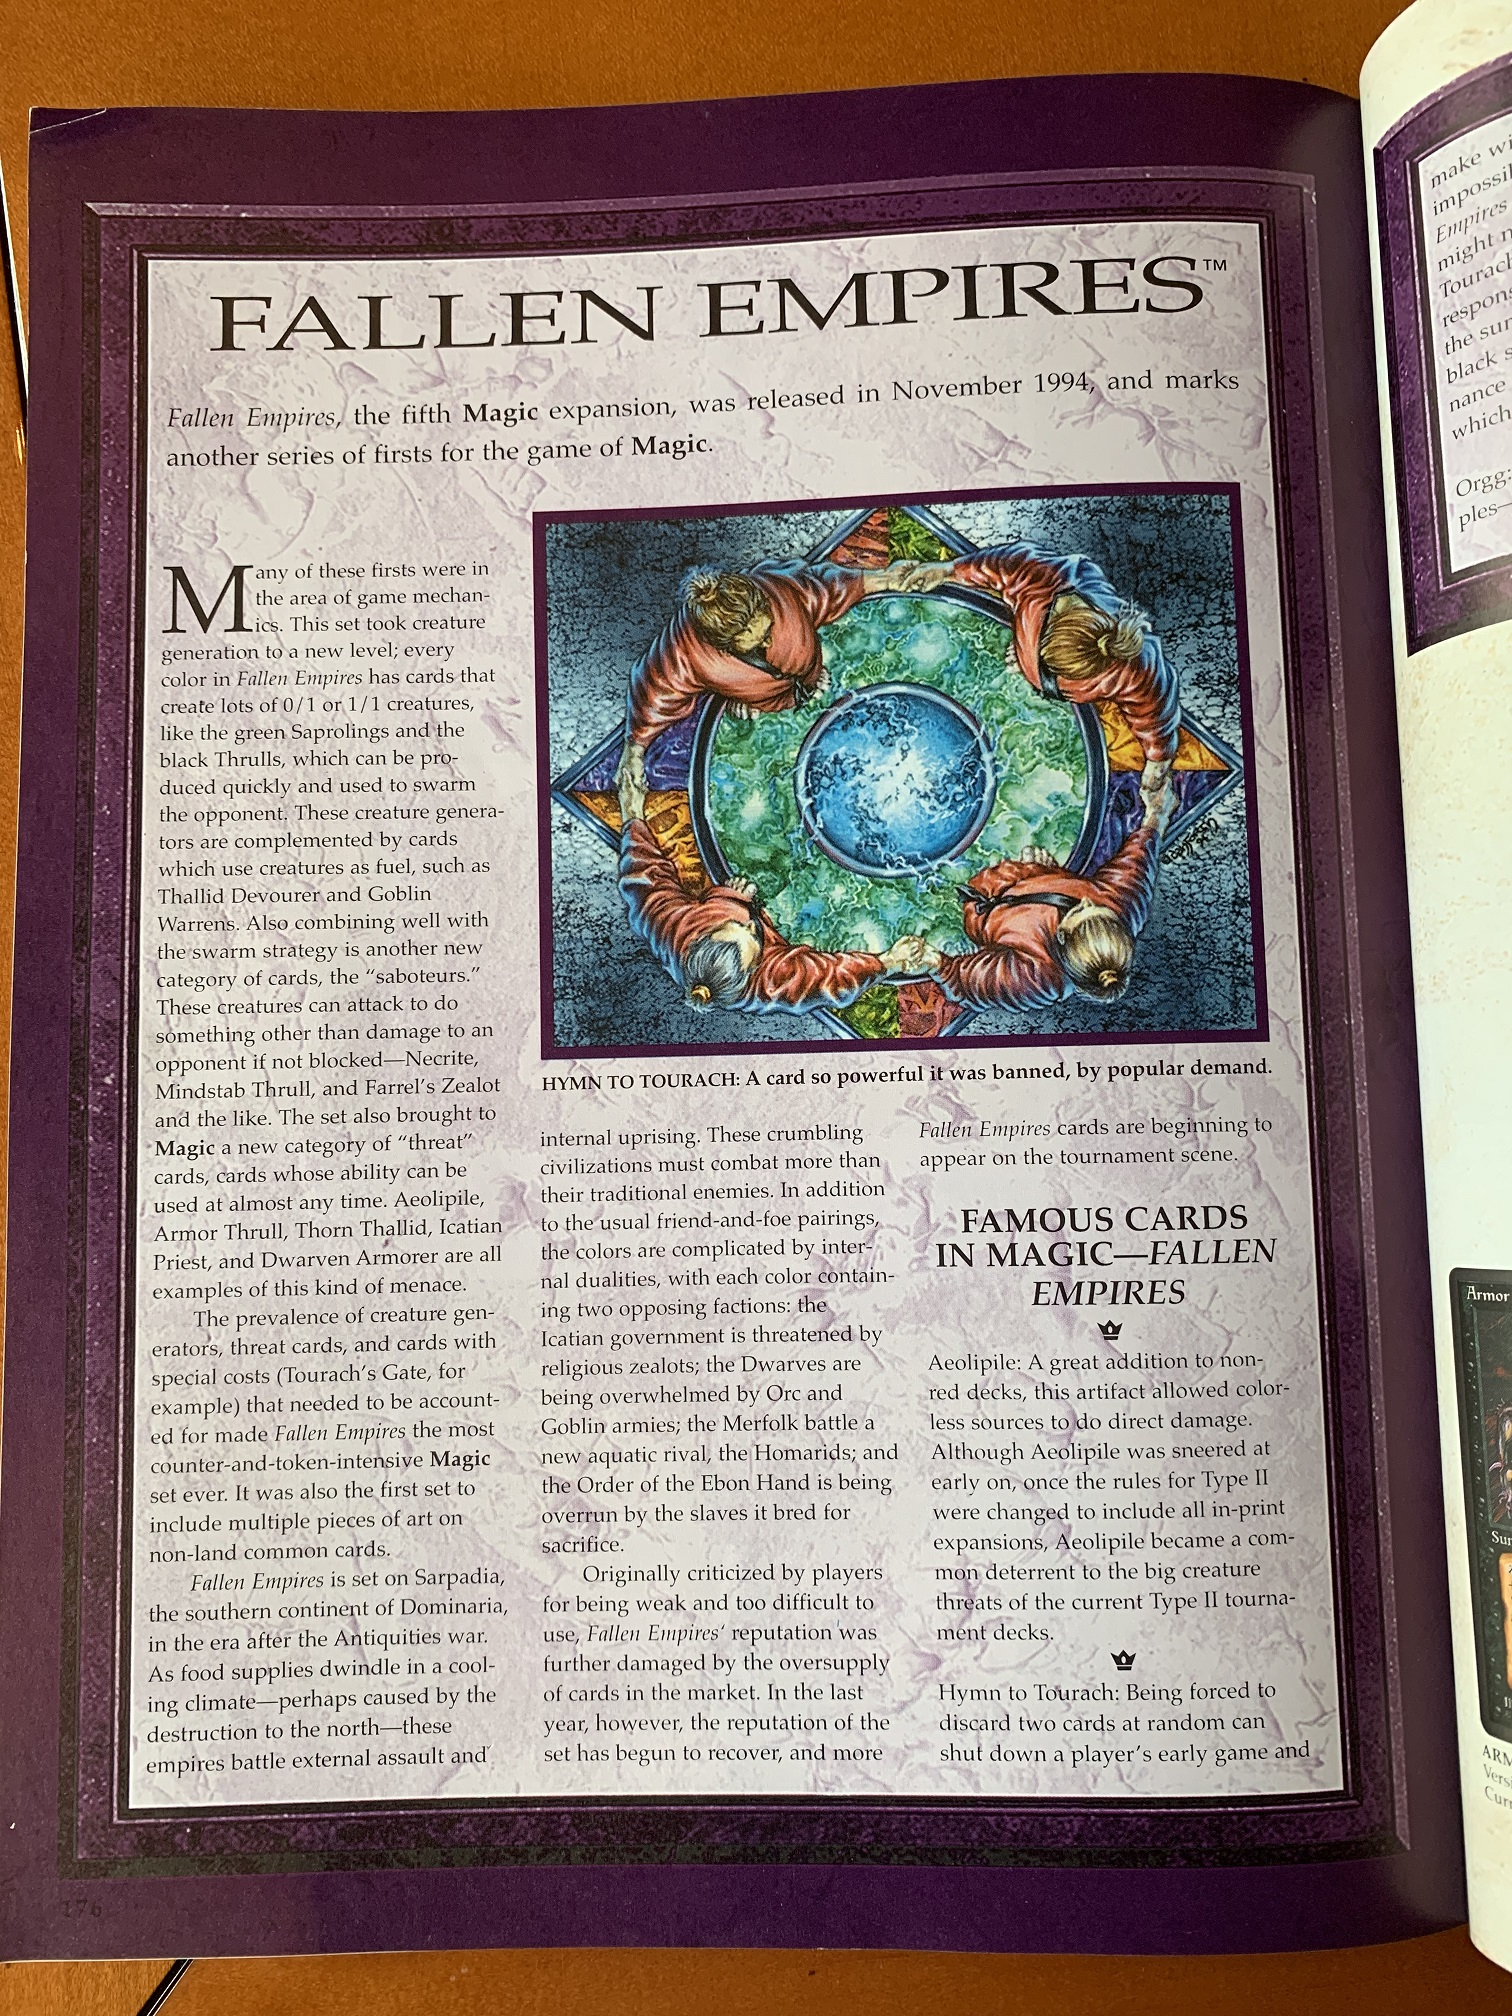 My second first glance at Fallen Empires